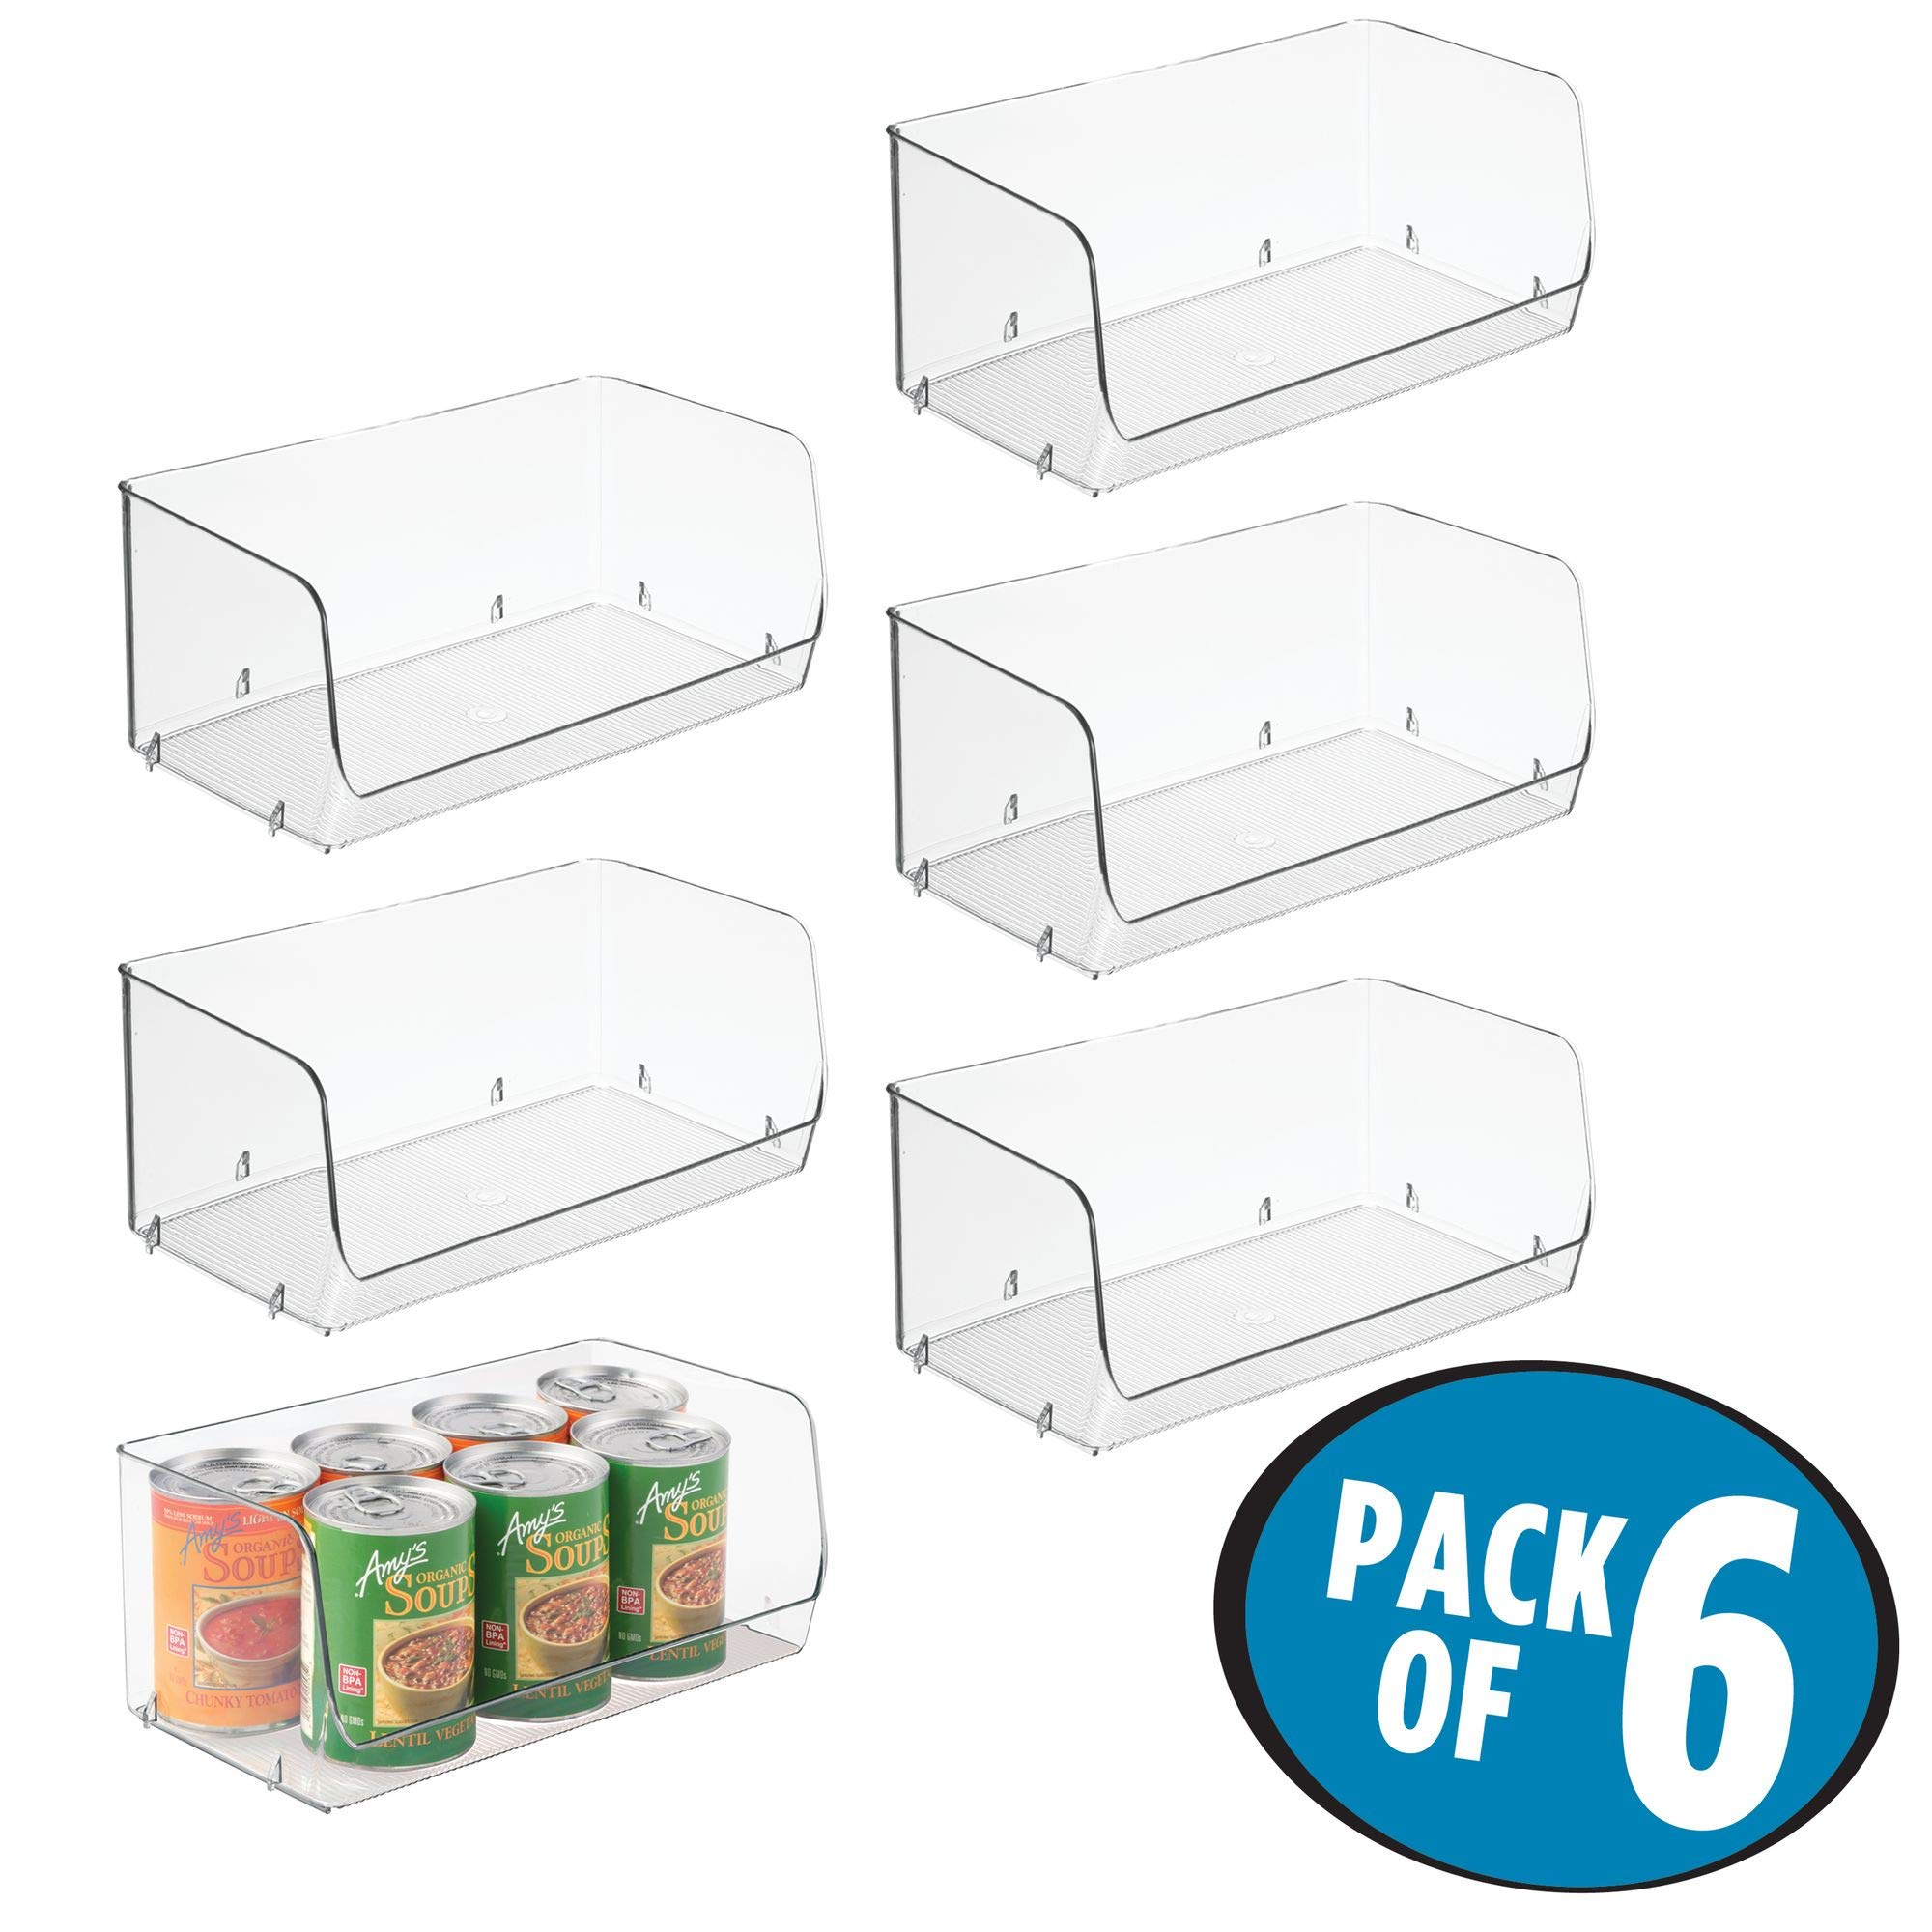 mDesign Household Stackable Plastic Storage Organizer Bin Basket with Open Front for Kitchen Cabinets, Pantry, Offices, Closets, Bedrooms, Bathrooms - 12'' Wide, Pack of 6, Clear by mDesign (Image #2)